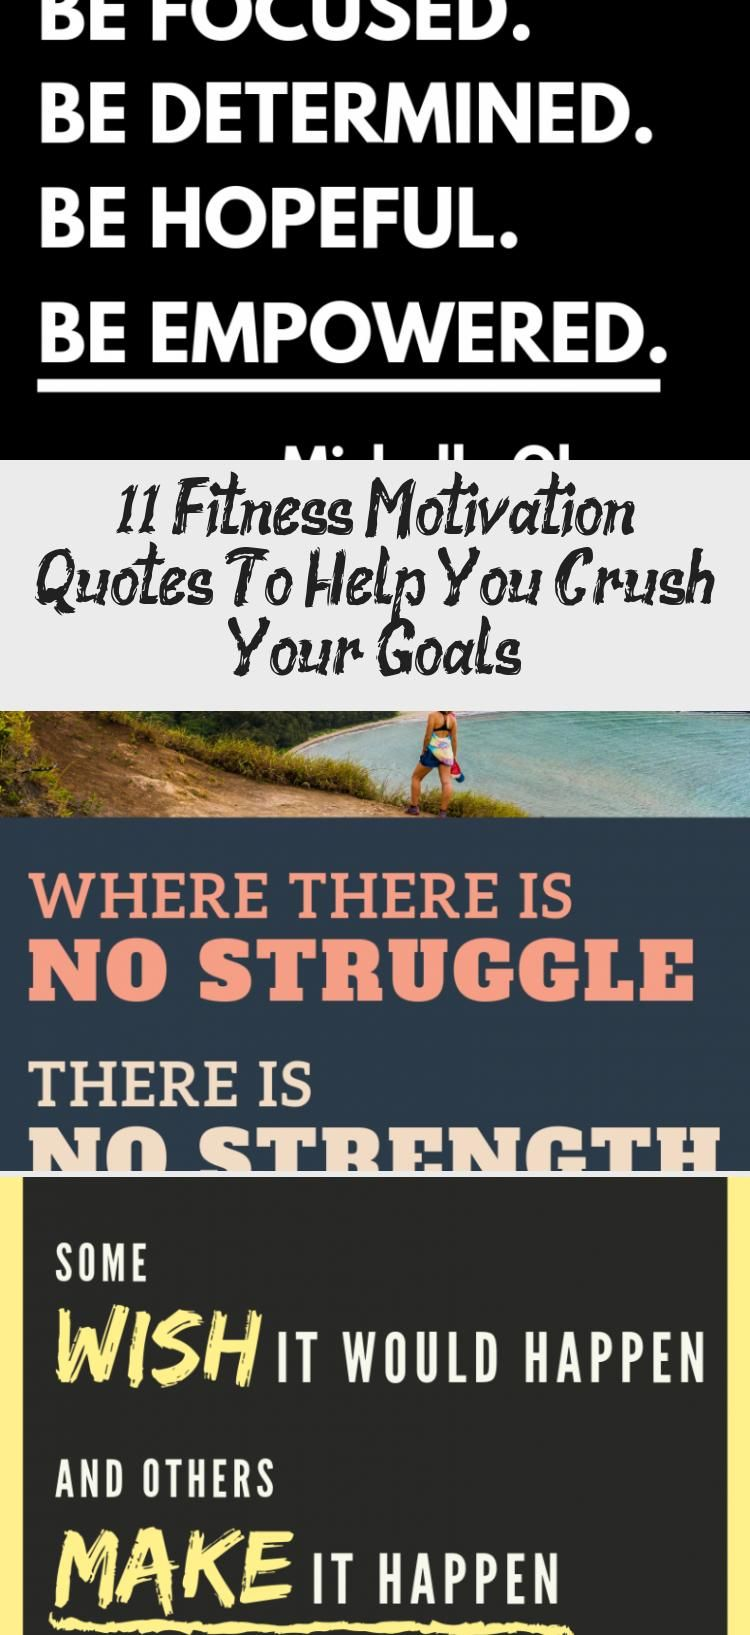 11 Fitness Motivation Quotes To Help You Crush Your Goals in 2020 | Fitness motivation quotes, Motivational quotes for working out, Motivational quotes